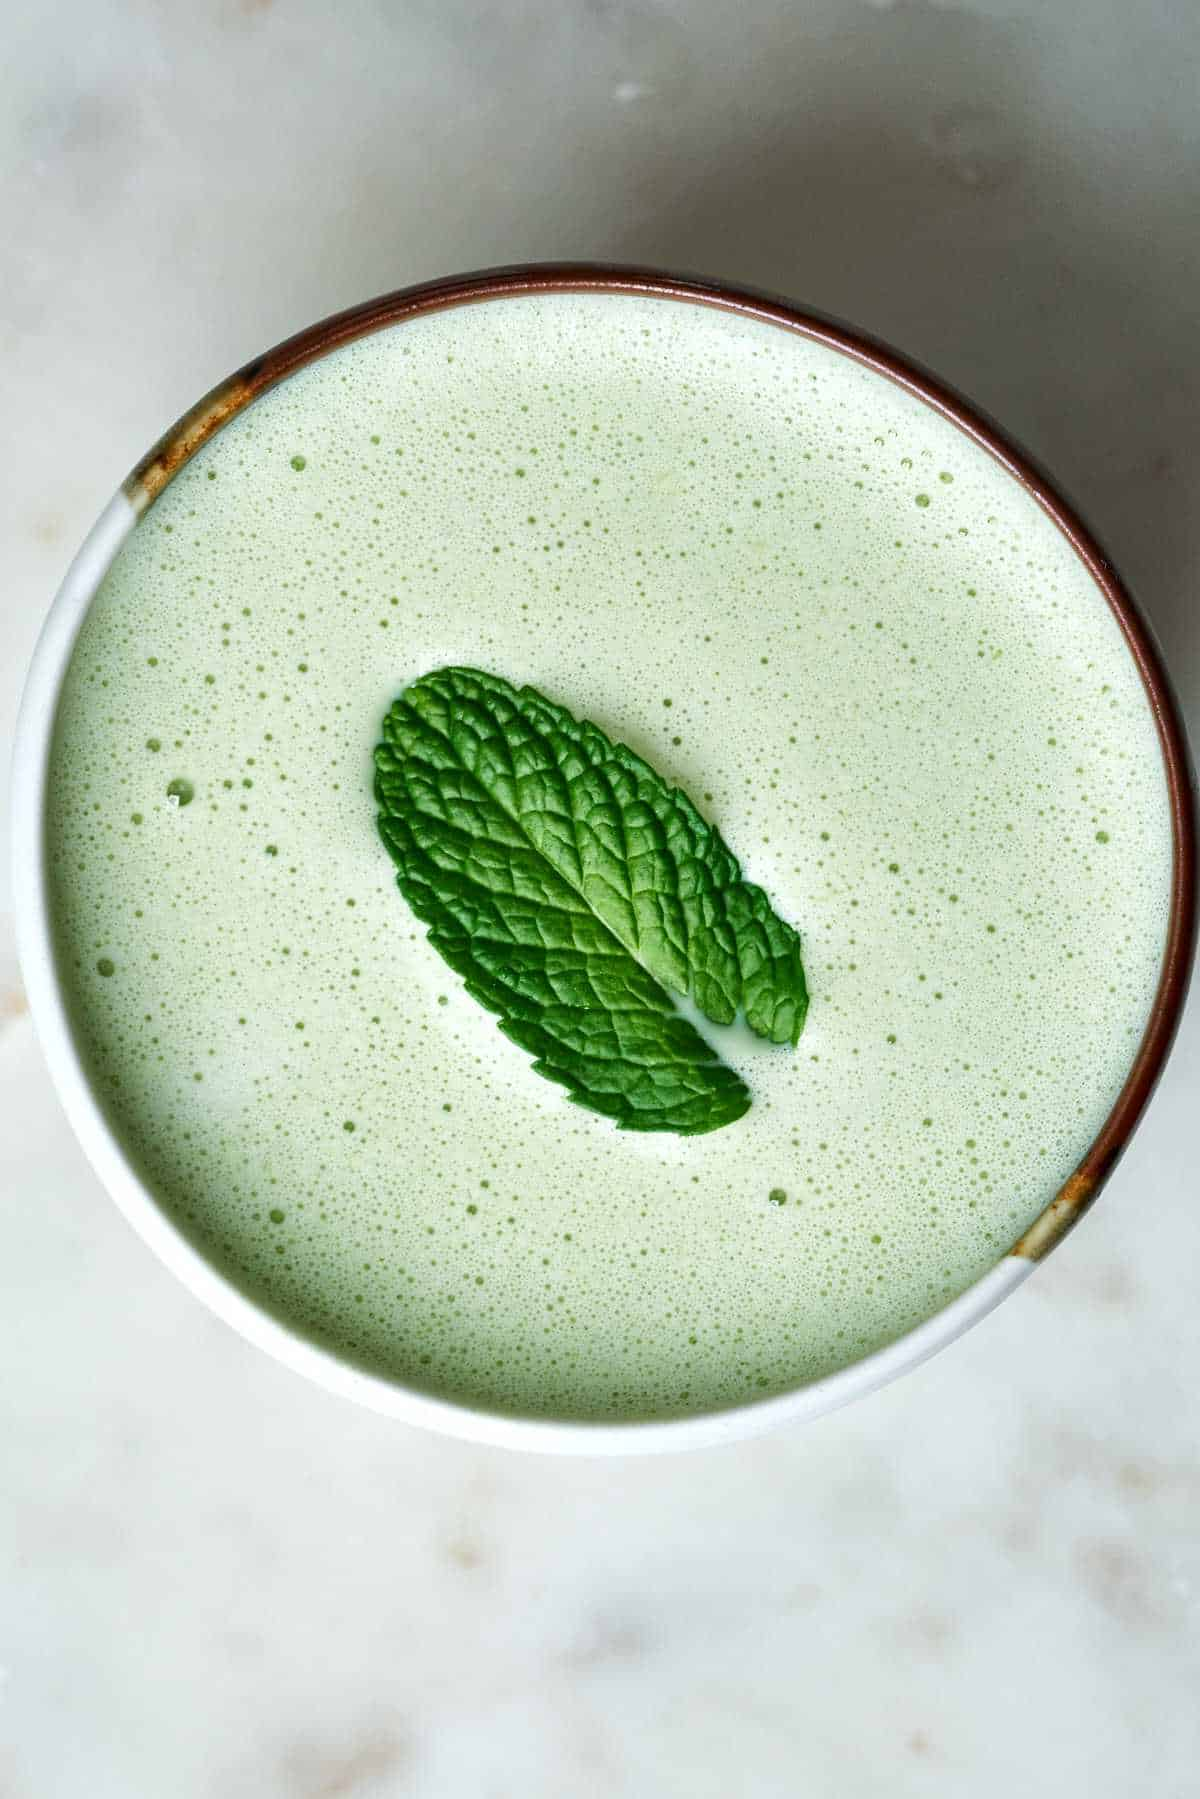 Green latte with a mint leaf on top.